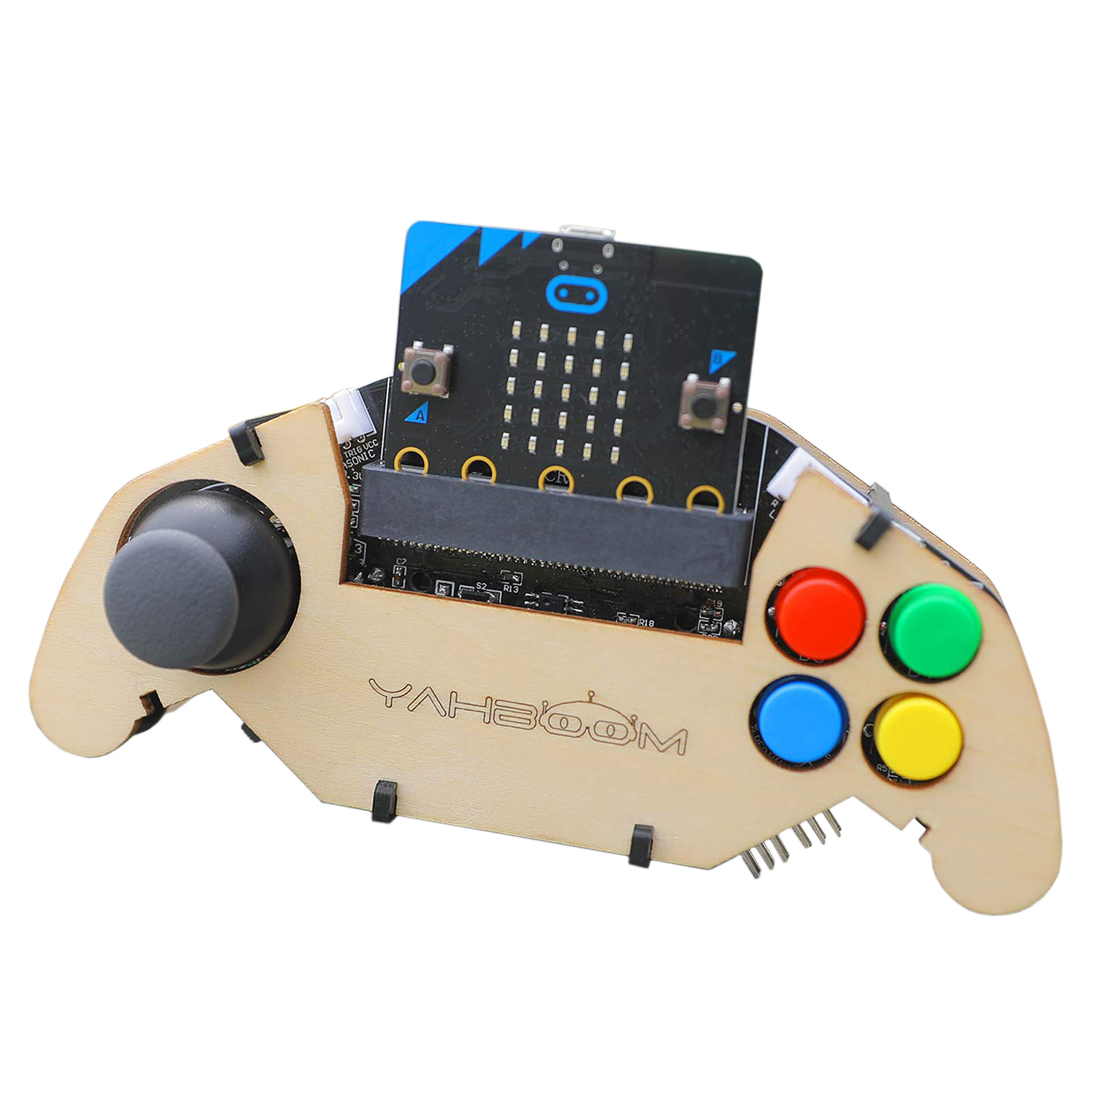 Micro:bit Gamepad Expansion Board Handle Microbit Robot Car Joystick STEM Toys Programming Game Controller (Without Board)